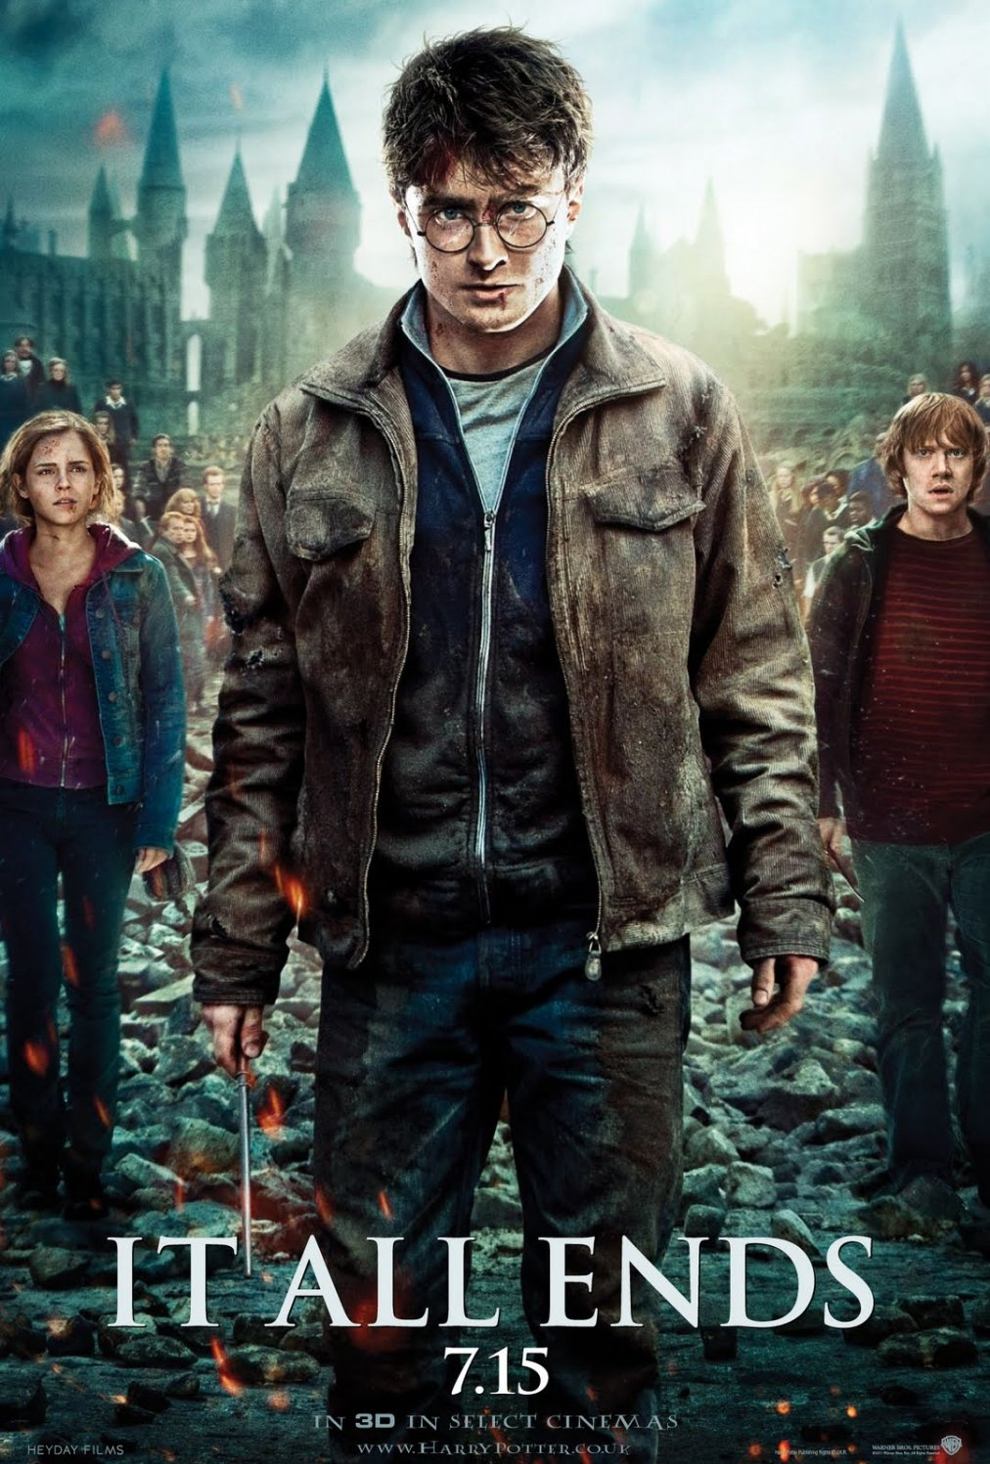 Harry Potter and the Deathly Hallows: Part II.